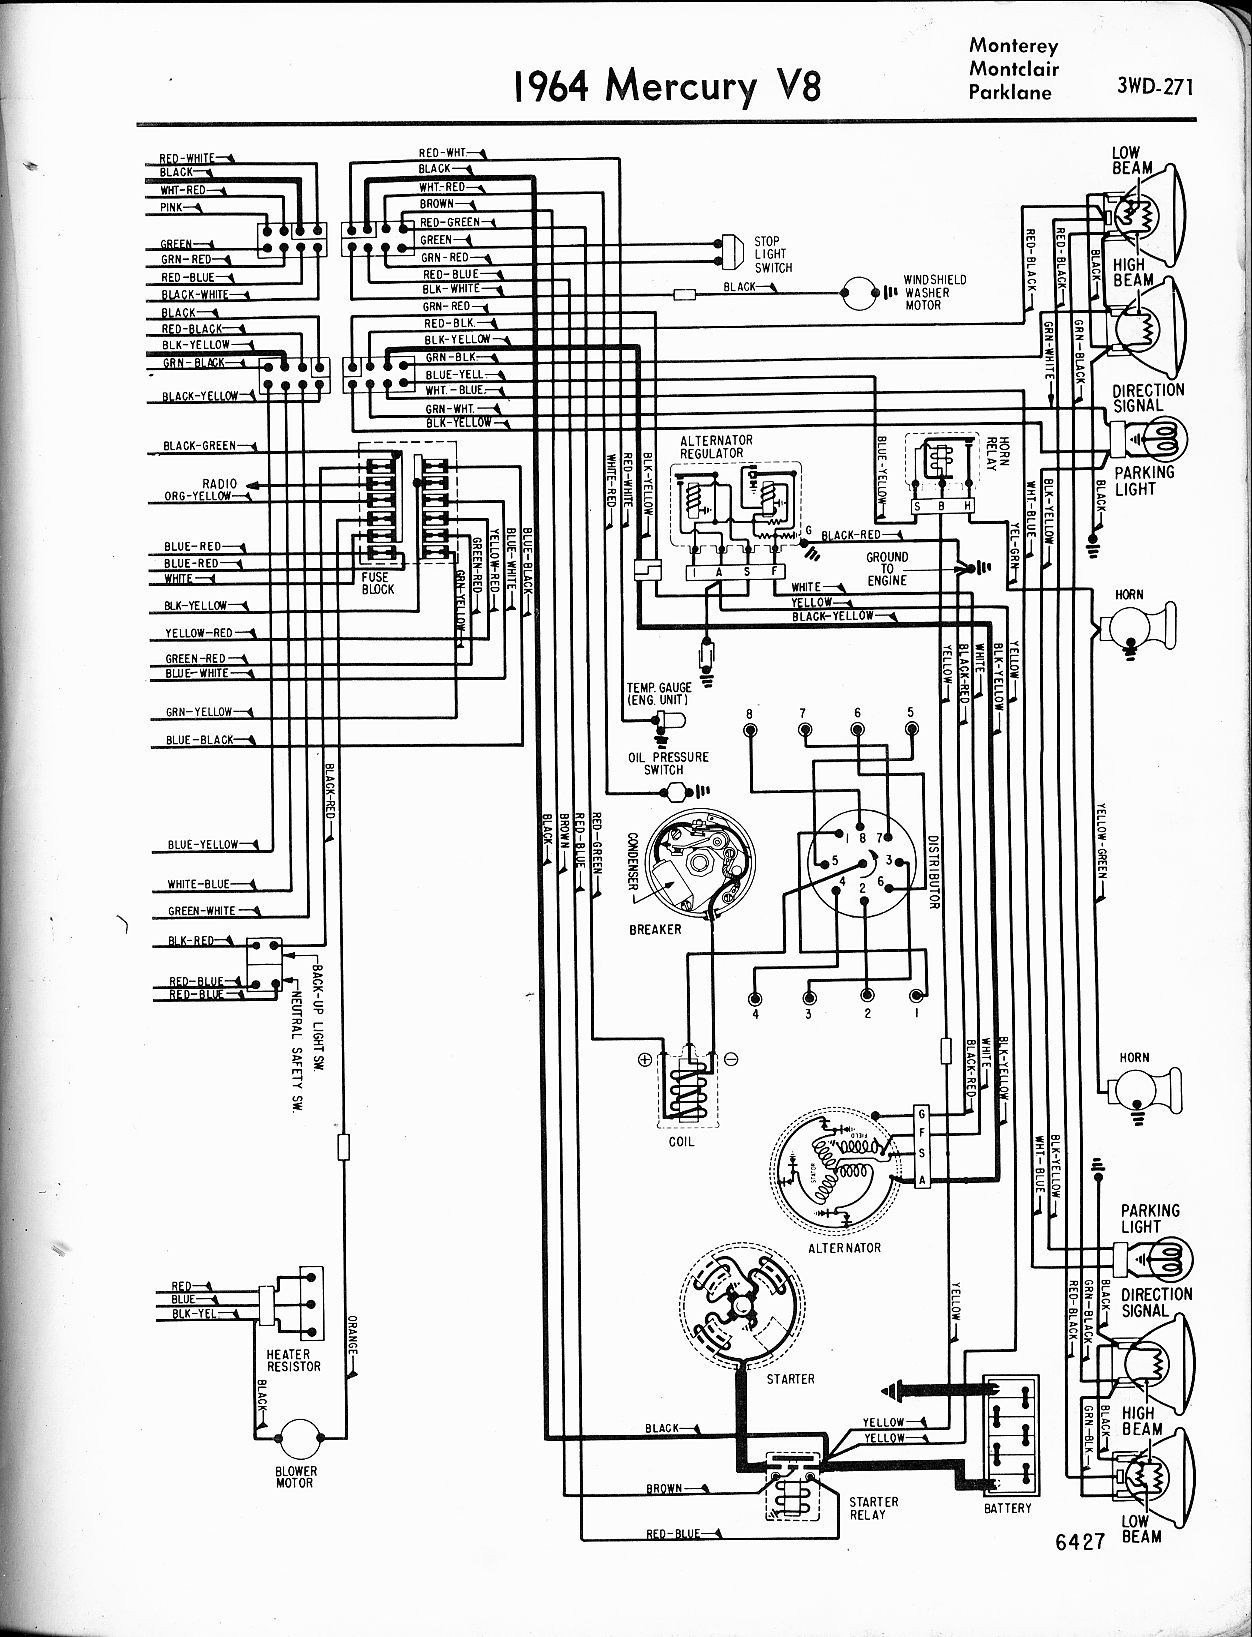 Mercury Outboard Rectifier Wiring Diagram - Auto Electrical Wiring - Mercury Outboard Rectifier Wiring Diagram